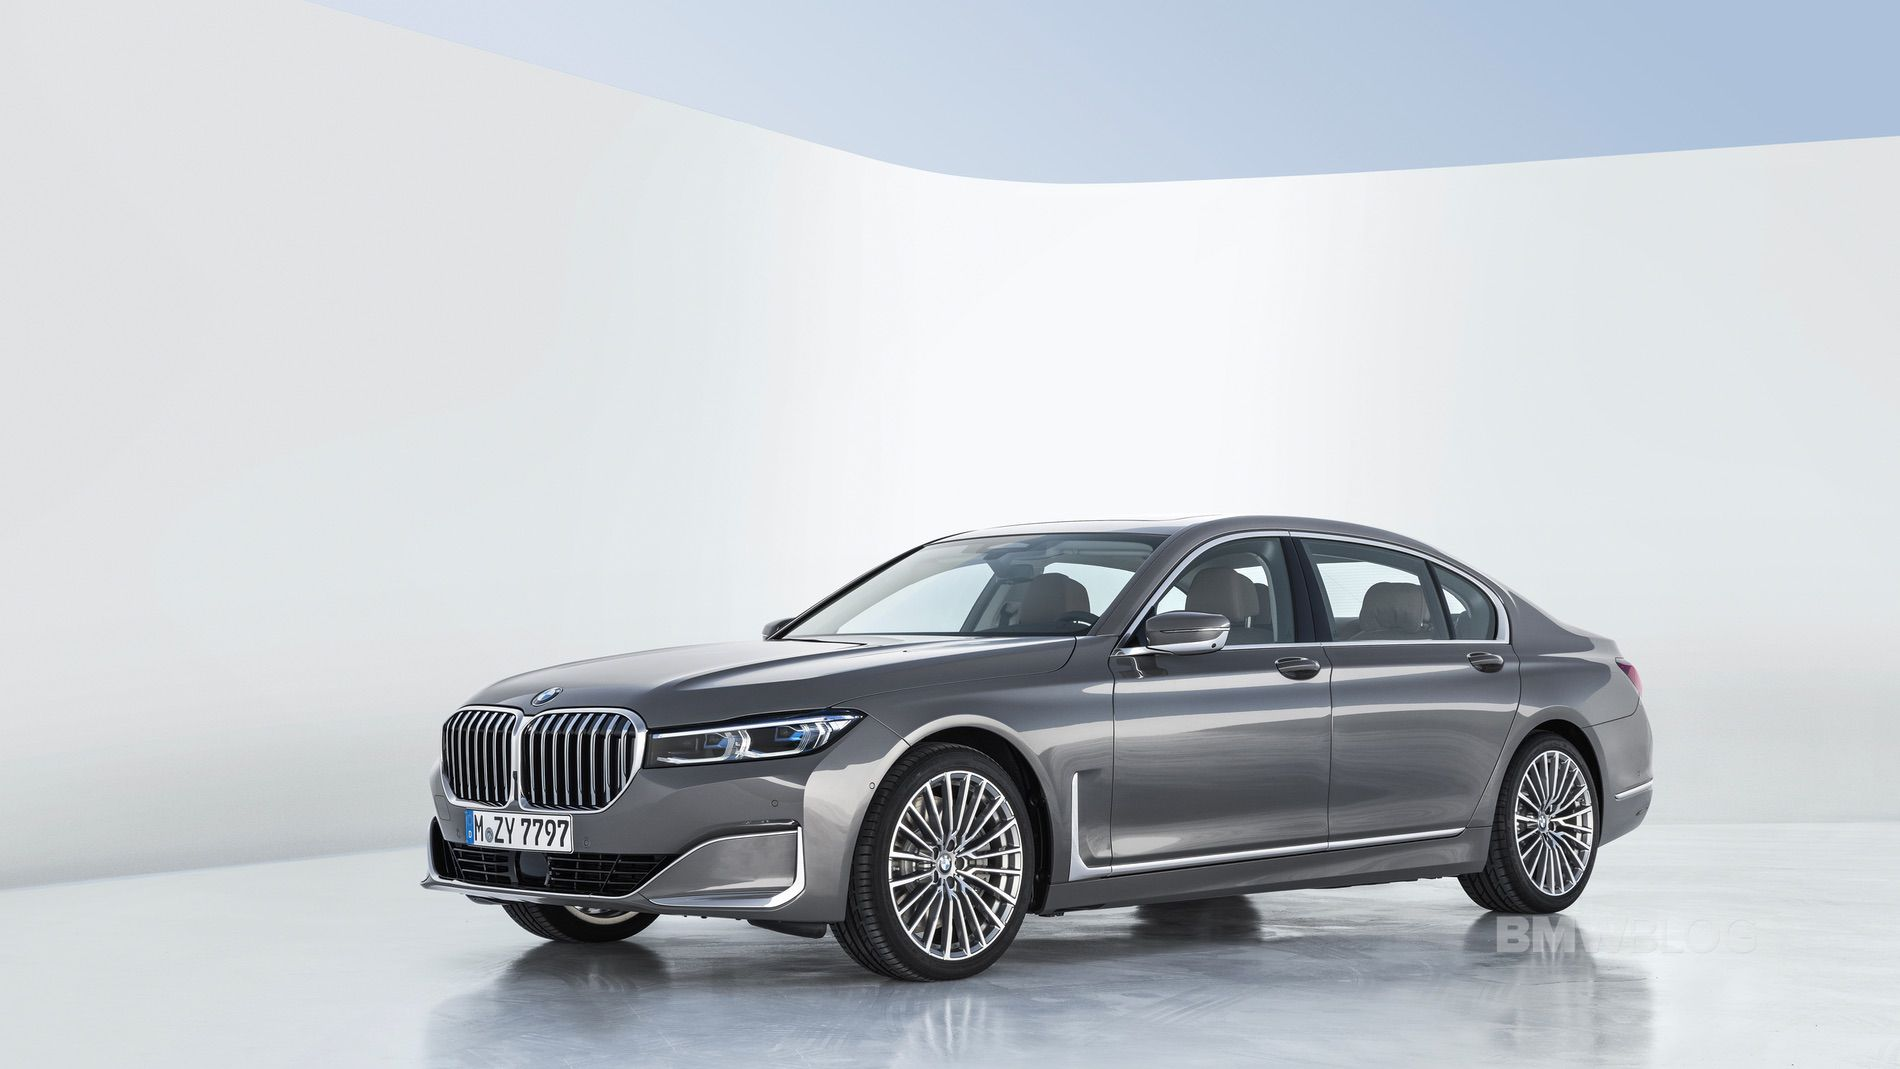 2019 BMW 7 Series Facelift exterior 35